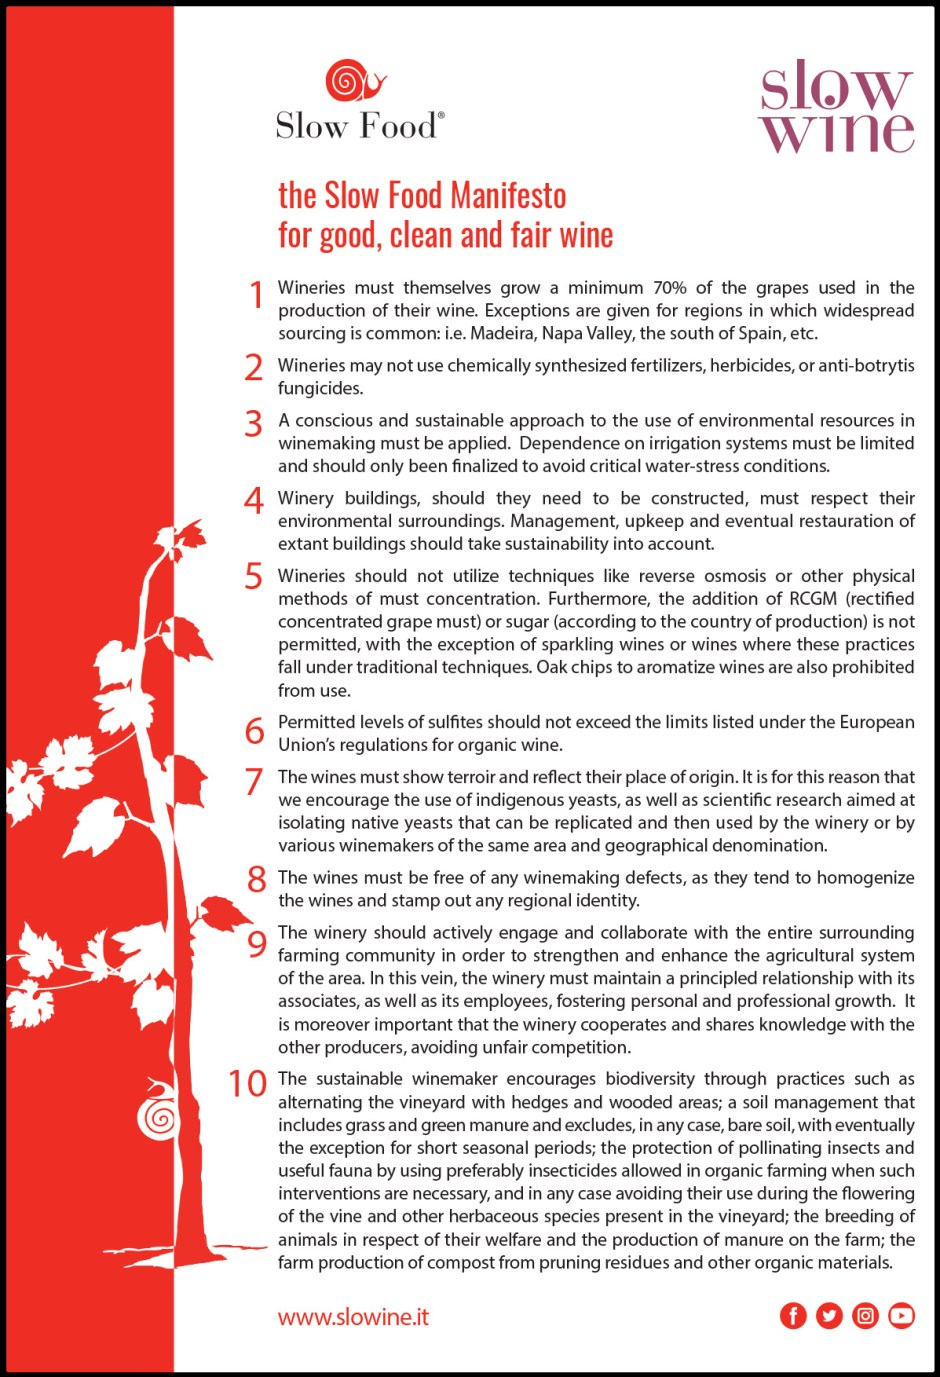 The Slow Food Manifesto for good, clean and fair wine:  1 - Wineries must directly cultivate at least 70% of the grapes used for the production of wines (exceptions are made for some areas that traditionally have a large trade of grapes, such as Madeira, Napa Valley, Southern Spain…).  2 - Wineries must not use fertilizers, herbicides and antibacterial agents deriving from synthetic chemistry.  3 - The use of environmental resources for wine production must be responsible and sustainable. The use of irrigation systems must be limited as much as possible, and aimed at avoiding cases of severe water stress.  4 – Any new company buildings to be built, must respect the landscape. Regarding buildings that already exist, any eventual renovation and their management must take into account environmental sustainability.  5 - Wineries must not use reverse osmosis or physical methods of must concentration. Furthermore, except for sparkling wines or wines that traditionally require it, MCR (Rectified Concentrated Must) or sugar (depending on the country of production) must not be used. The use of shavings is not taken into consideration to flavor wines.  6 - The amount of sulfur in the wine must not exceed the limits indicated in the European Union organic wine certification.  7 - The wines must reflect the terroir of origin. This is the reason we welcome the use of indigenous yeasts as well as scientific research aimed at isolating native yeasts, which can then be replicated and used by the company or by several winemakers of the same area and denomination.  8 - Wines must be free of the major oenological defects, because these tend to make the wines homogeneous and flatten the territorial differences.  9 - It is desirable that the winery actively collaborates with the entire agricultural community in order to enhance the agricultural system of the territorial area where it produces. In this regard, it is absolutely necessary for the winery to maintain a virtuous relationship 